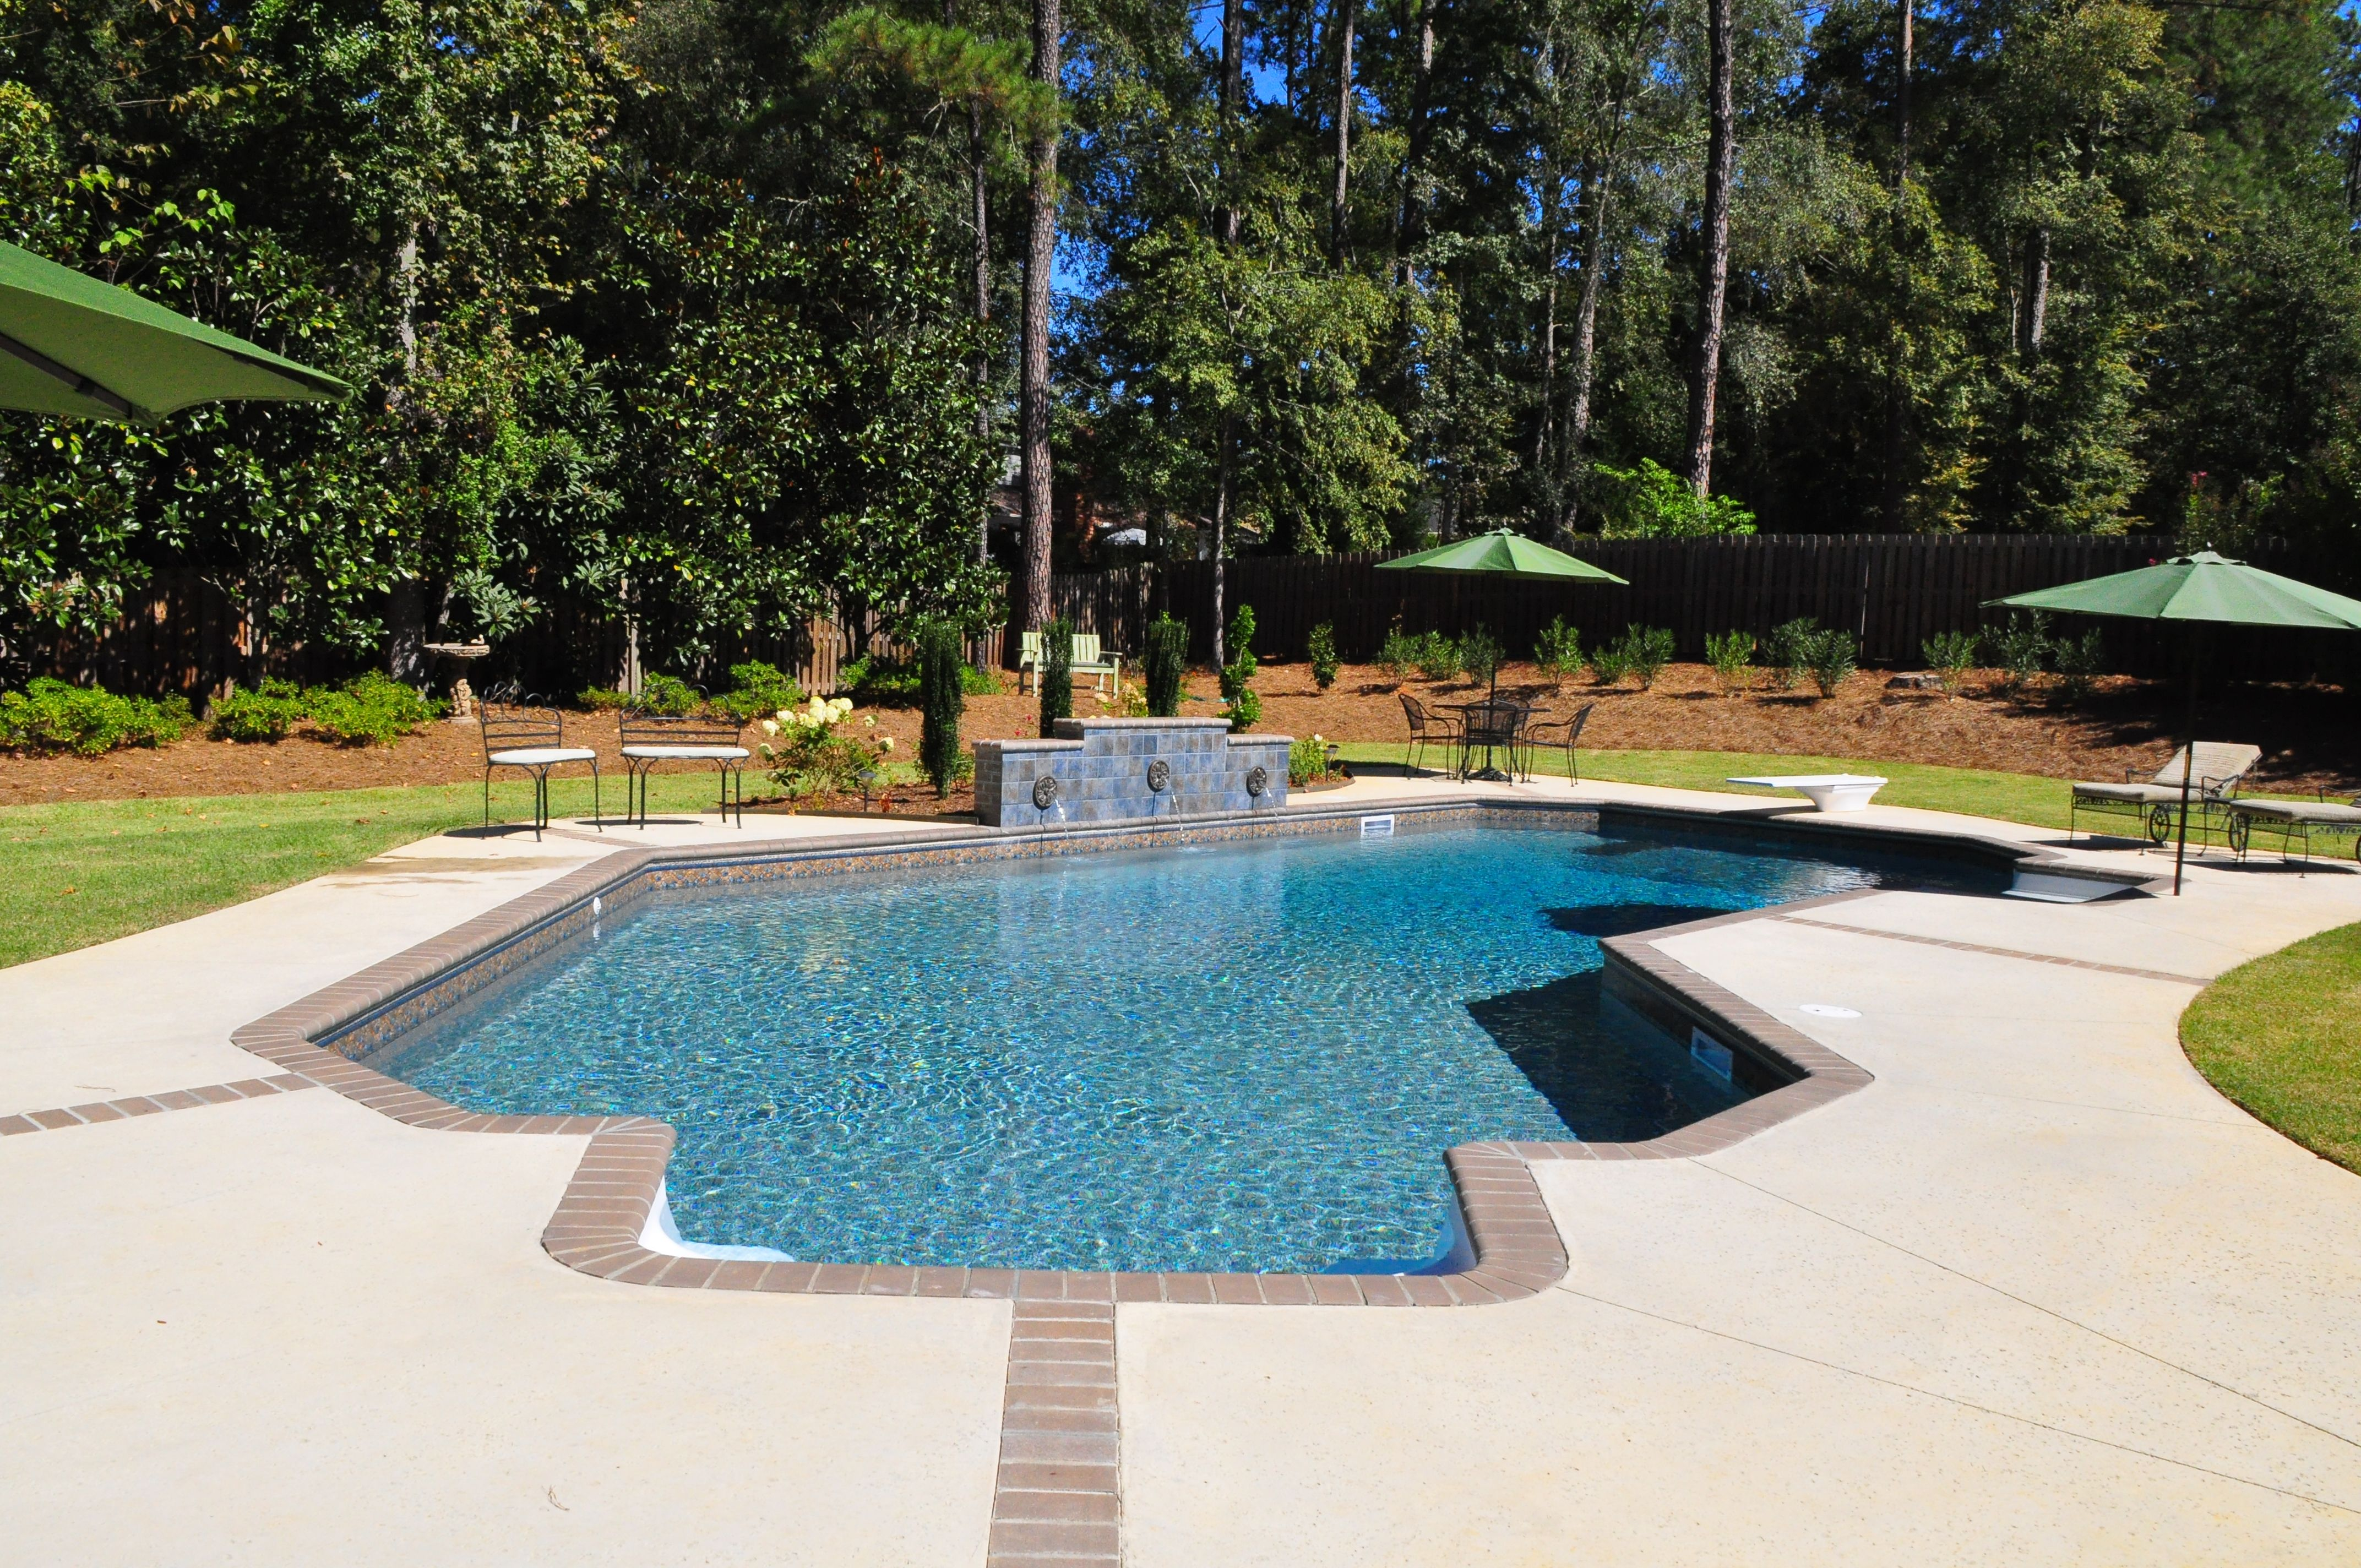 Lazy l vinyl swimming pool with brick expansion joints in